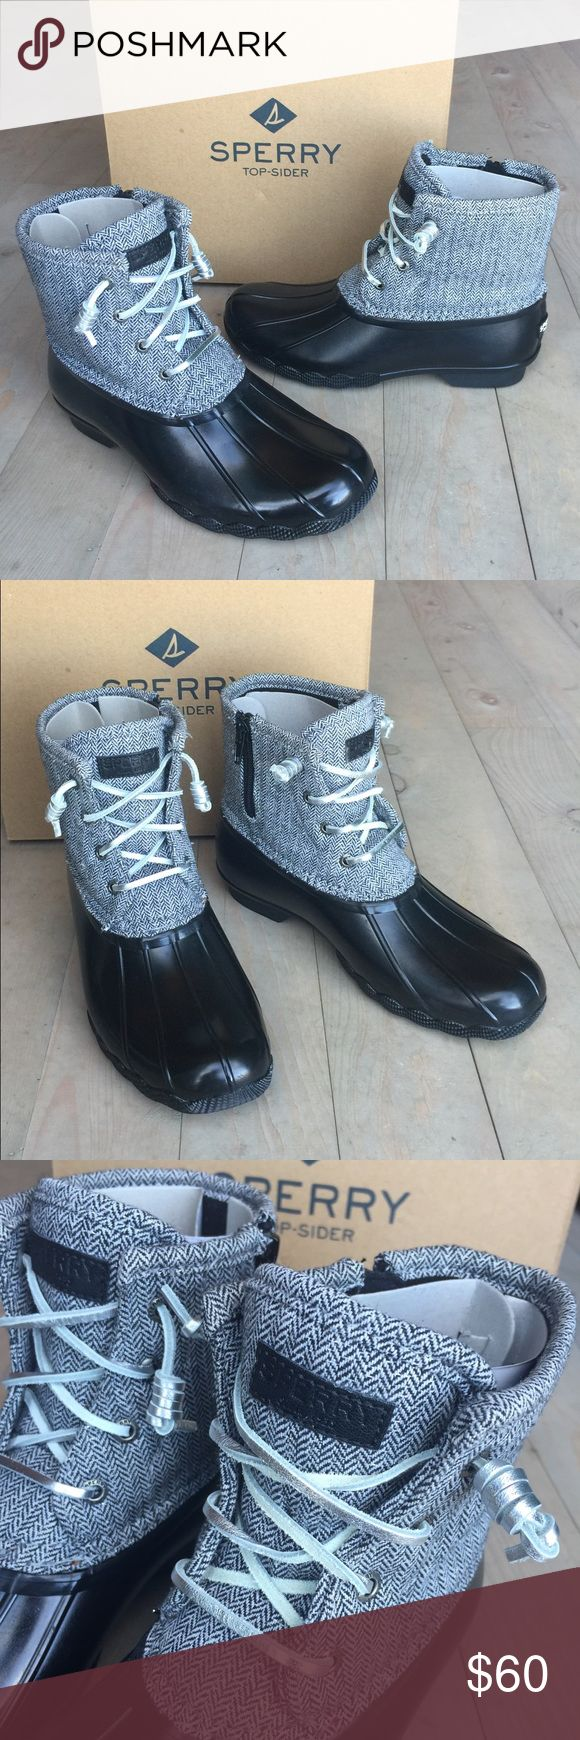 Sperry Top-Sider Saltwater Duck Boots Herringbone Brand New with Box!  Kids Sperry Top-Sider Saltwater Duck Boots Size 4 Girls/EUR 36 (will fit a 6 women's too) Color is Black and silver herringbone with silver laces Black rubber sole Side zipper for easy on and off This season -- current style! Sperry Top-Sider Shoes Winter & Rain Boots